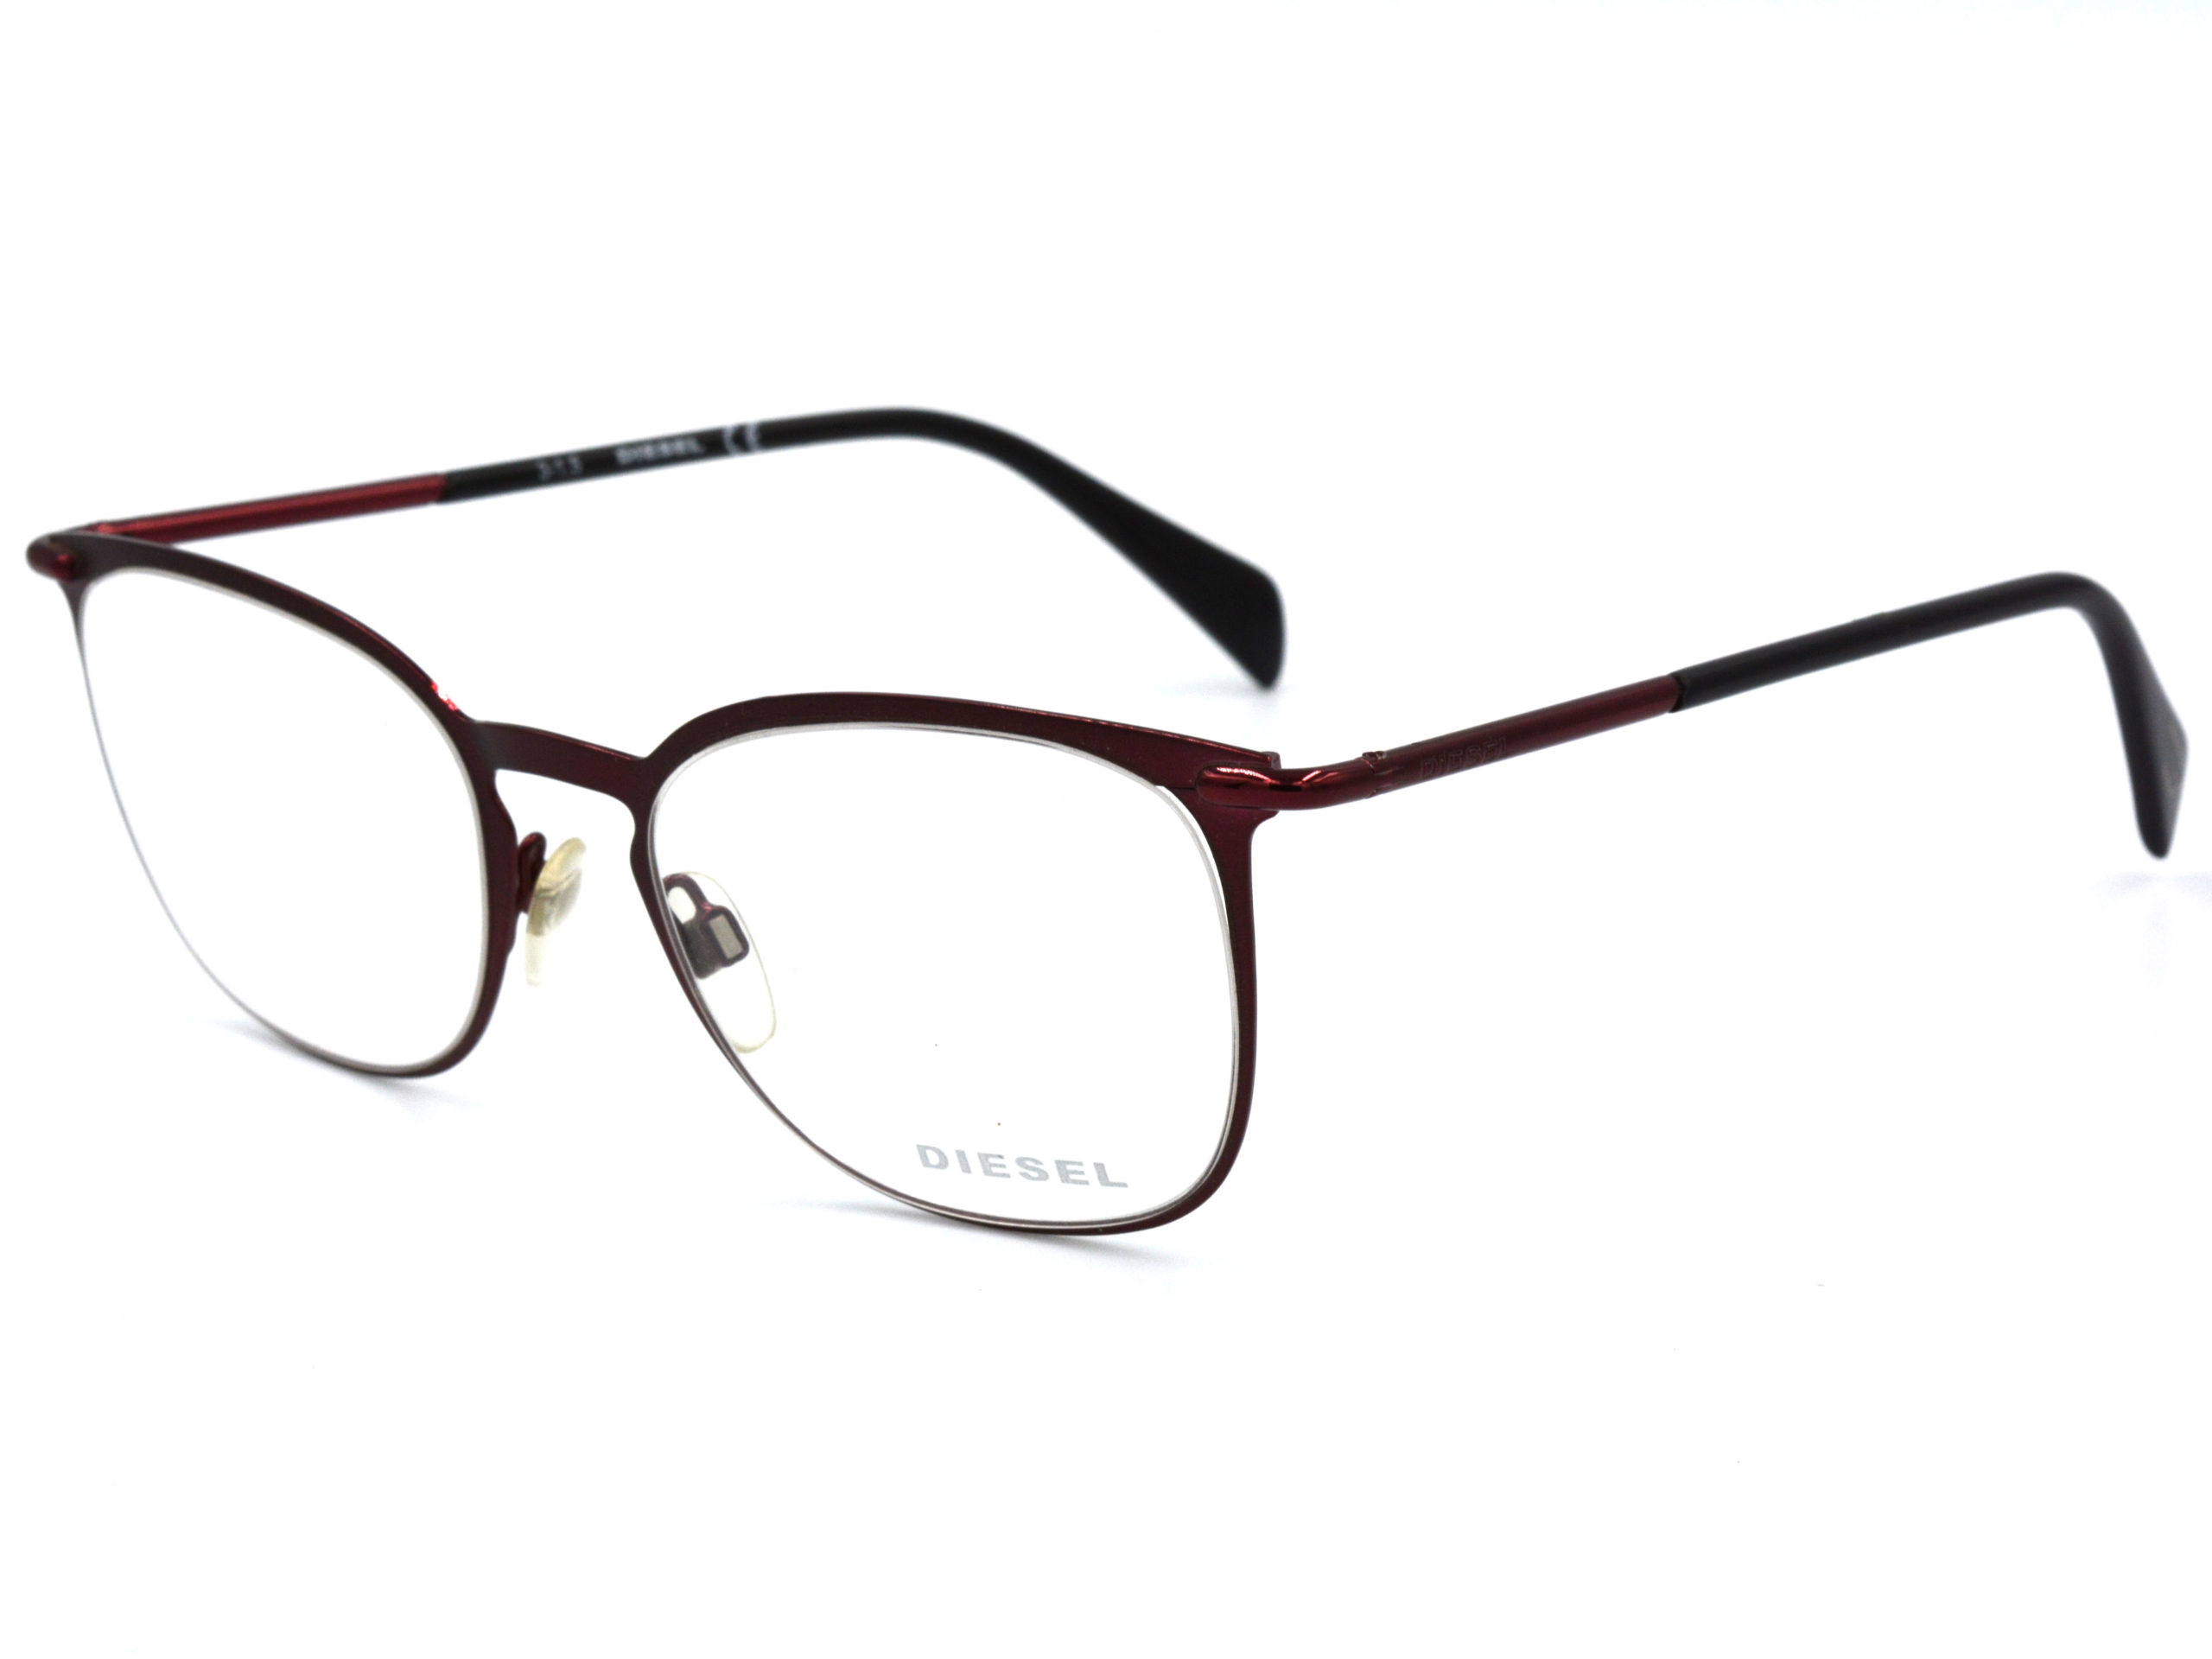 DIESEL DL5164 068 UNISEX Prescription Glasses 2020